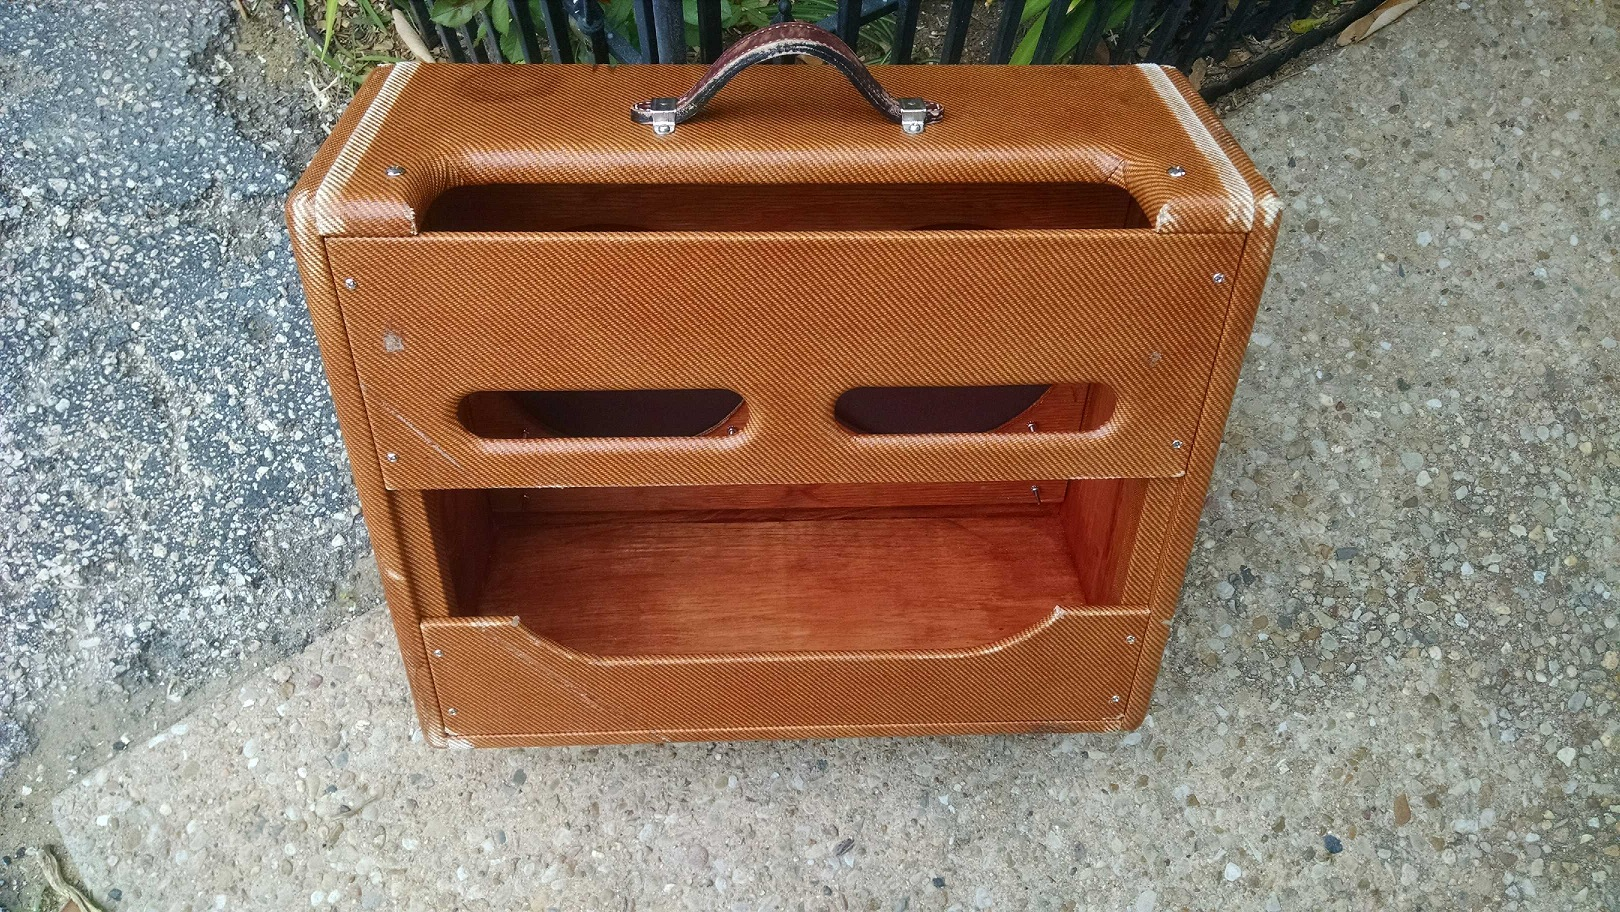 With Over 20 Years Of Building Fender Replacement Cabinets I Have The  Experience Needed To Build You A Beautiful Fender Relic Cabinet To Make  Your Amplifier ...